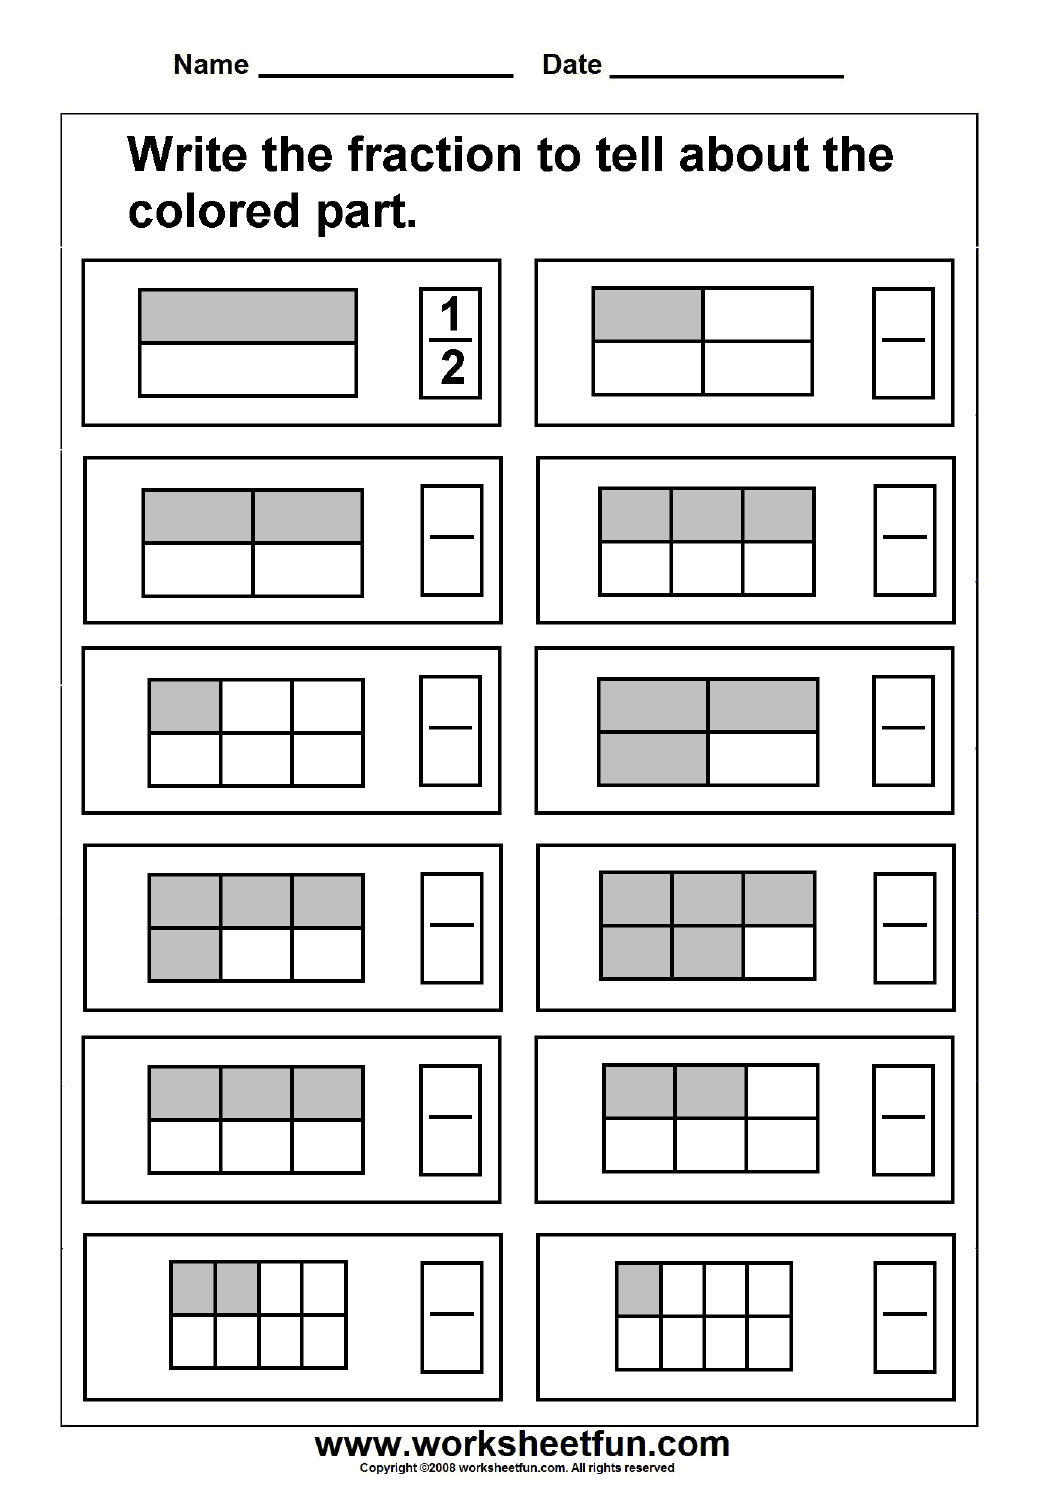 math worksheet : fraction  model  3 worksheets  free printable worksheets  : Fraction Worksheets Free